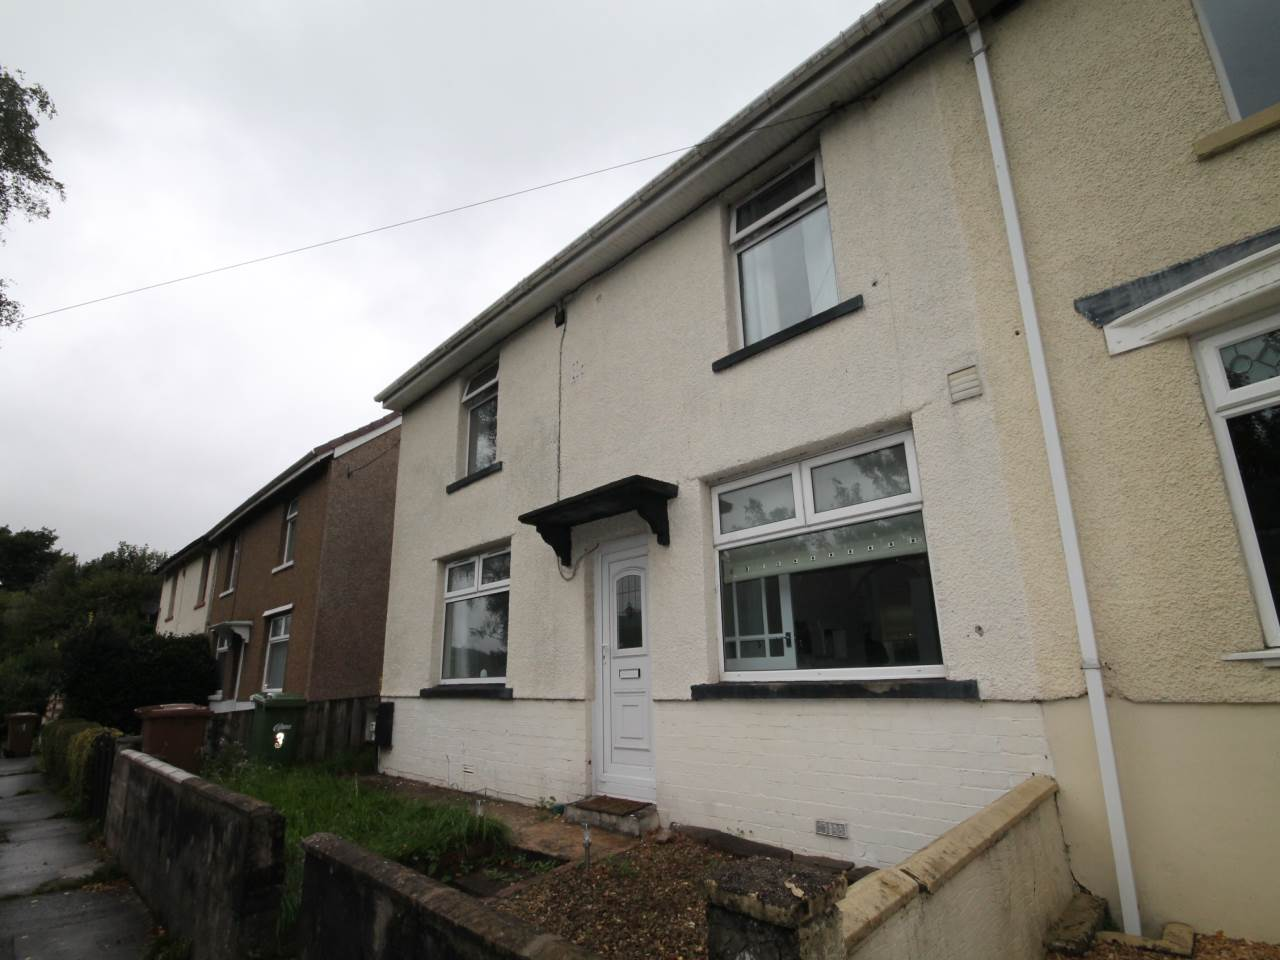 3 Mountain View, Abertridwr, Caerphilly, CF83 4AT